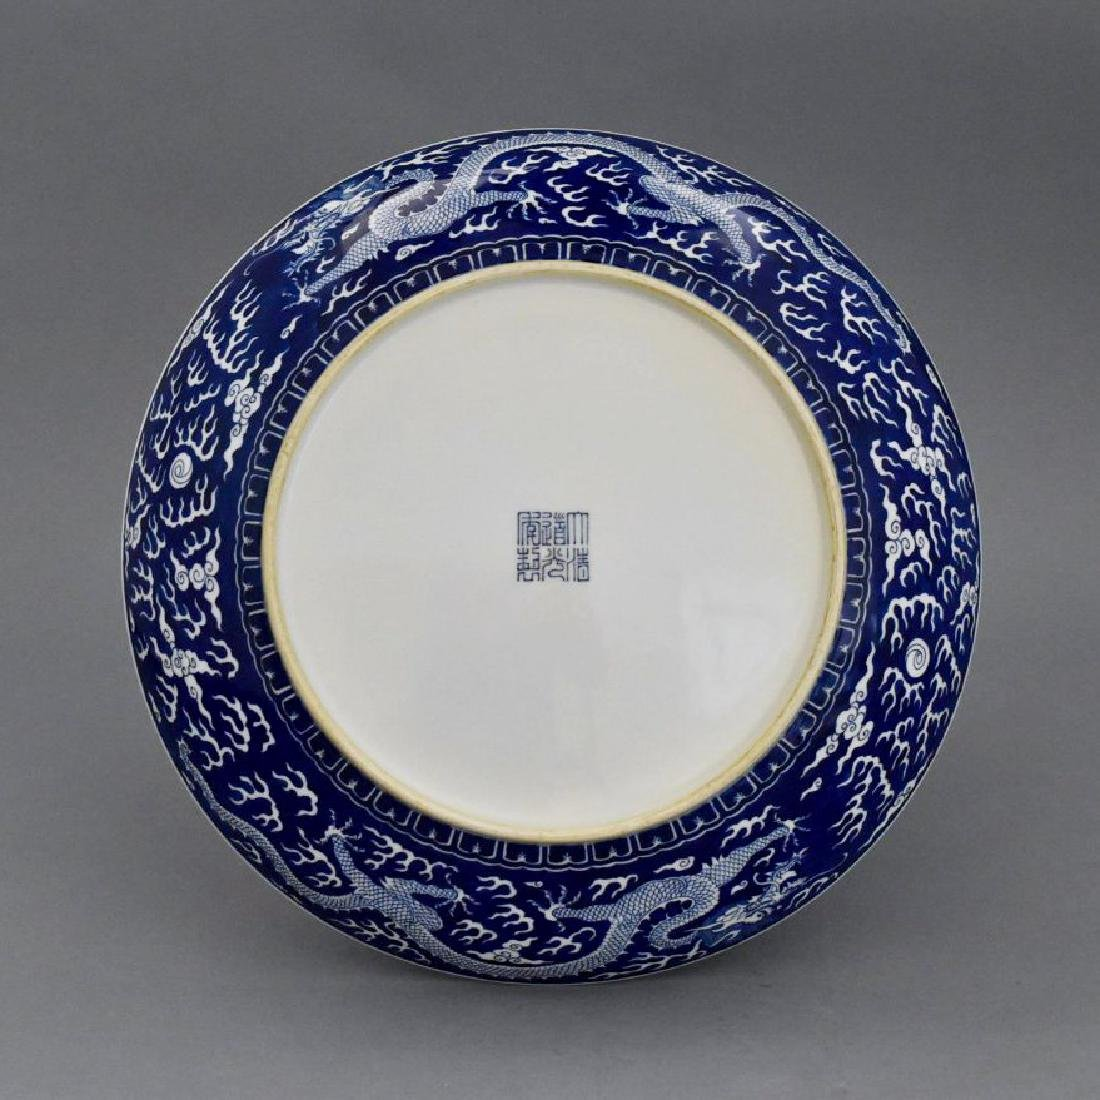 DAOGUANG REVERSED BLUE GLAZED DRAGON CHARGER - 2